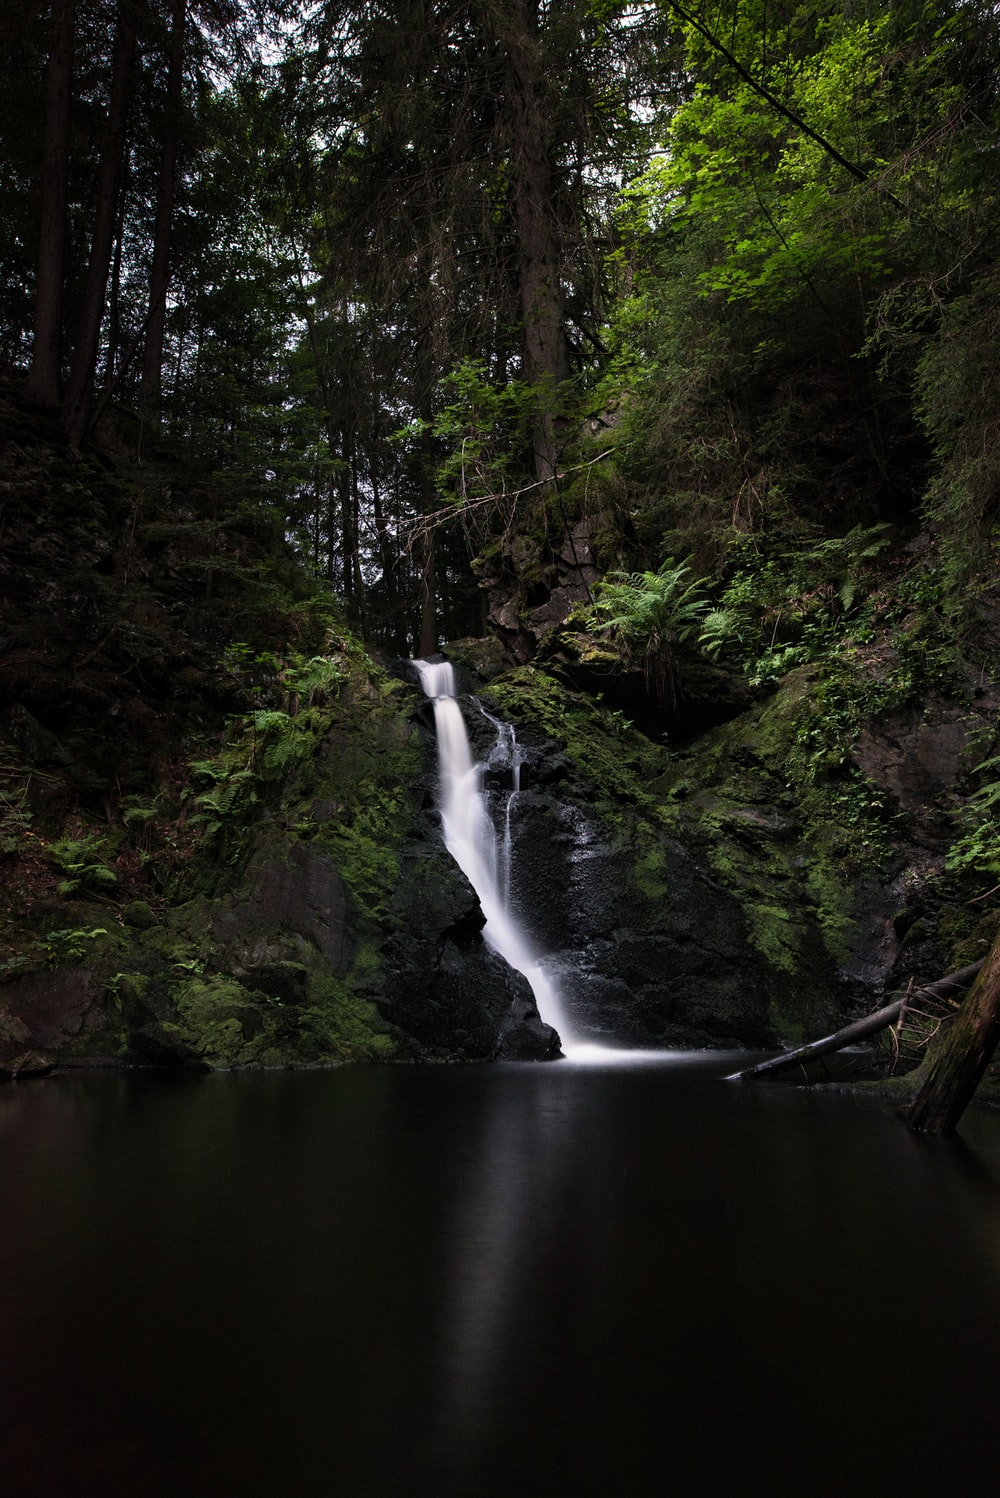 waterfalls surround by green trees